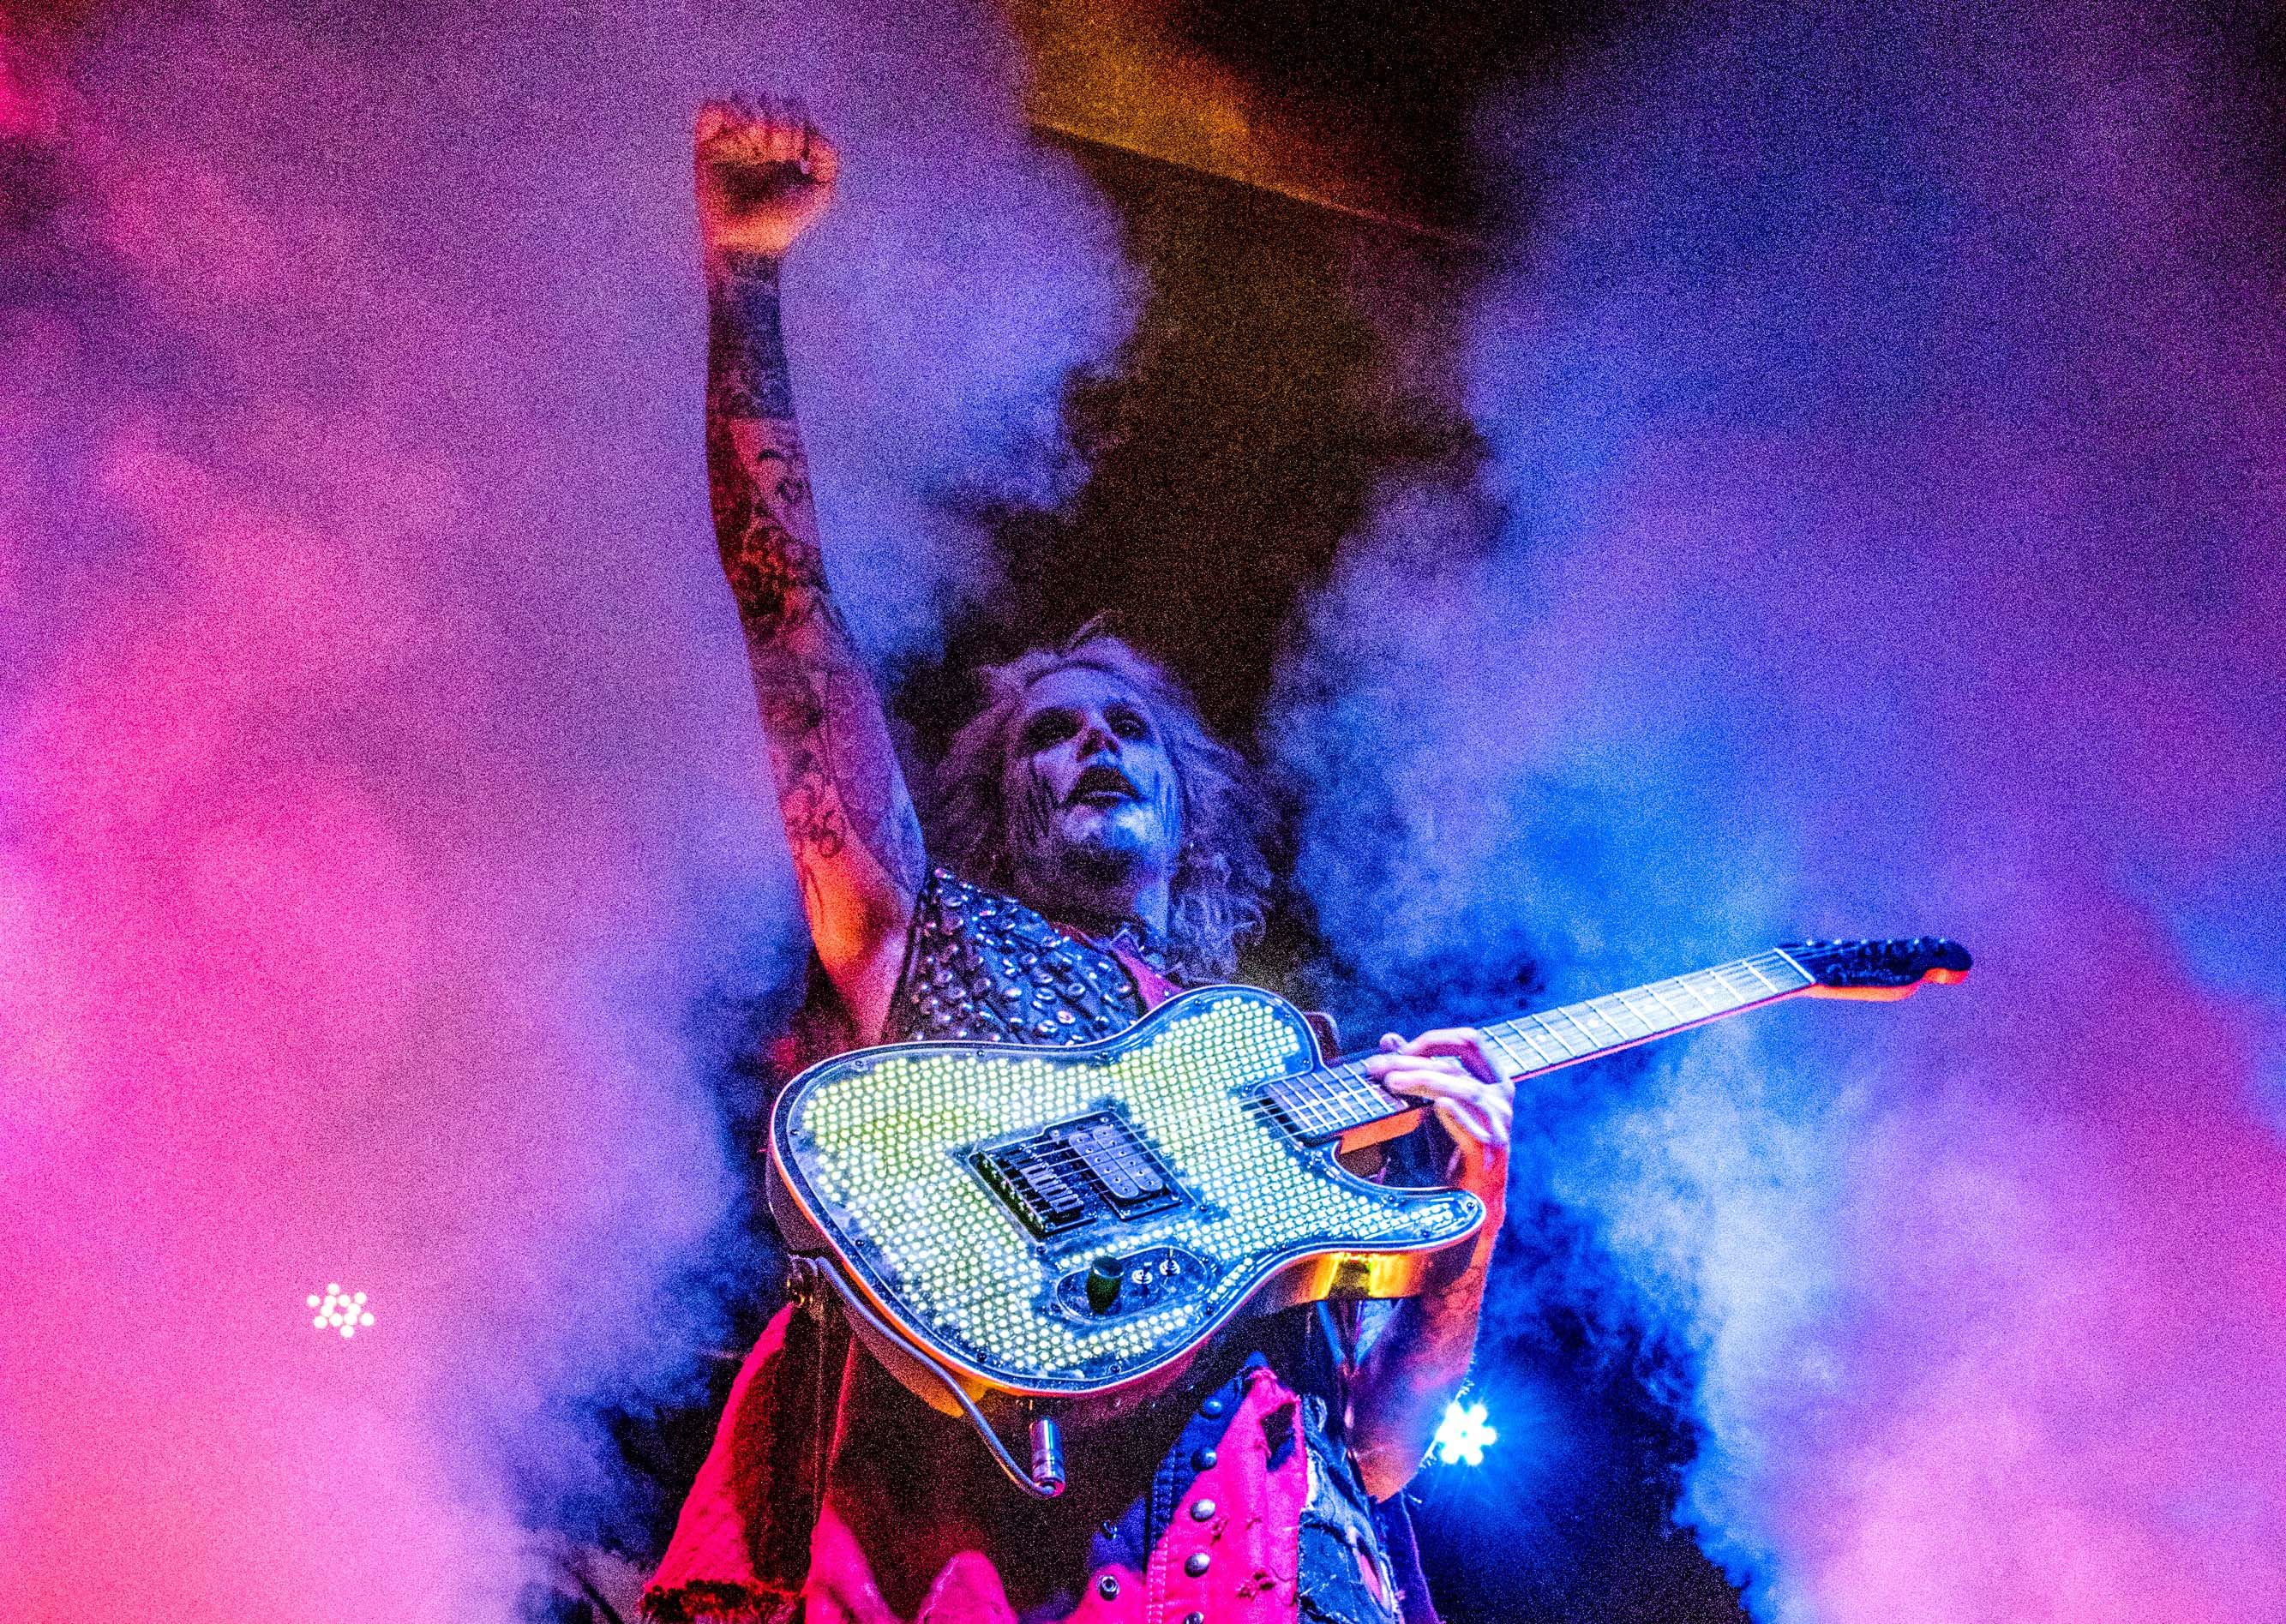 John 5 // Jared James Nichols